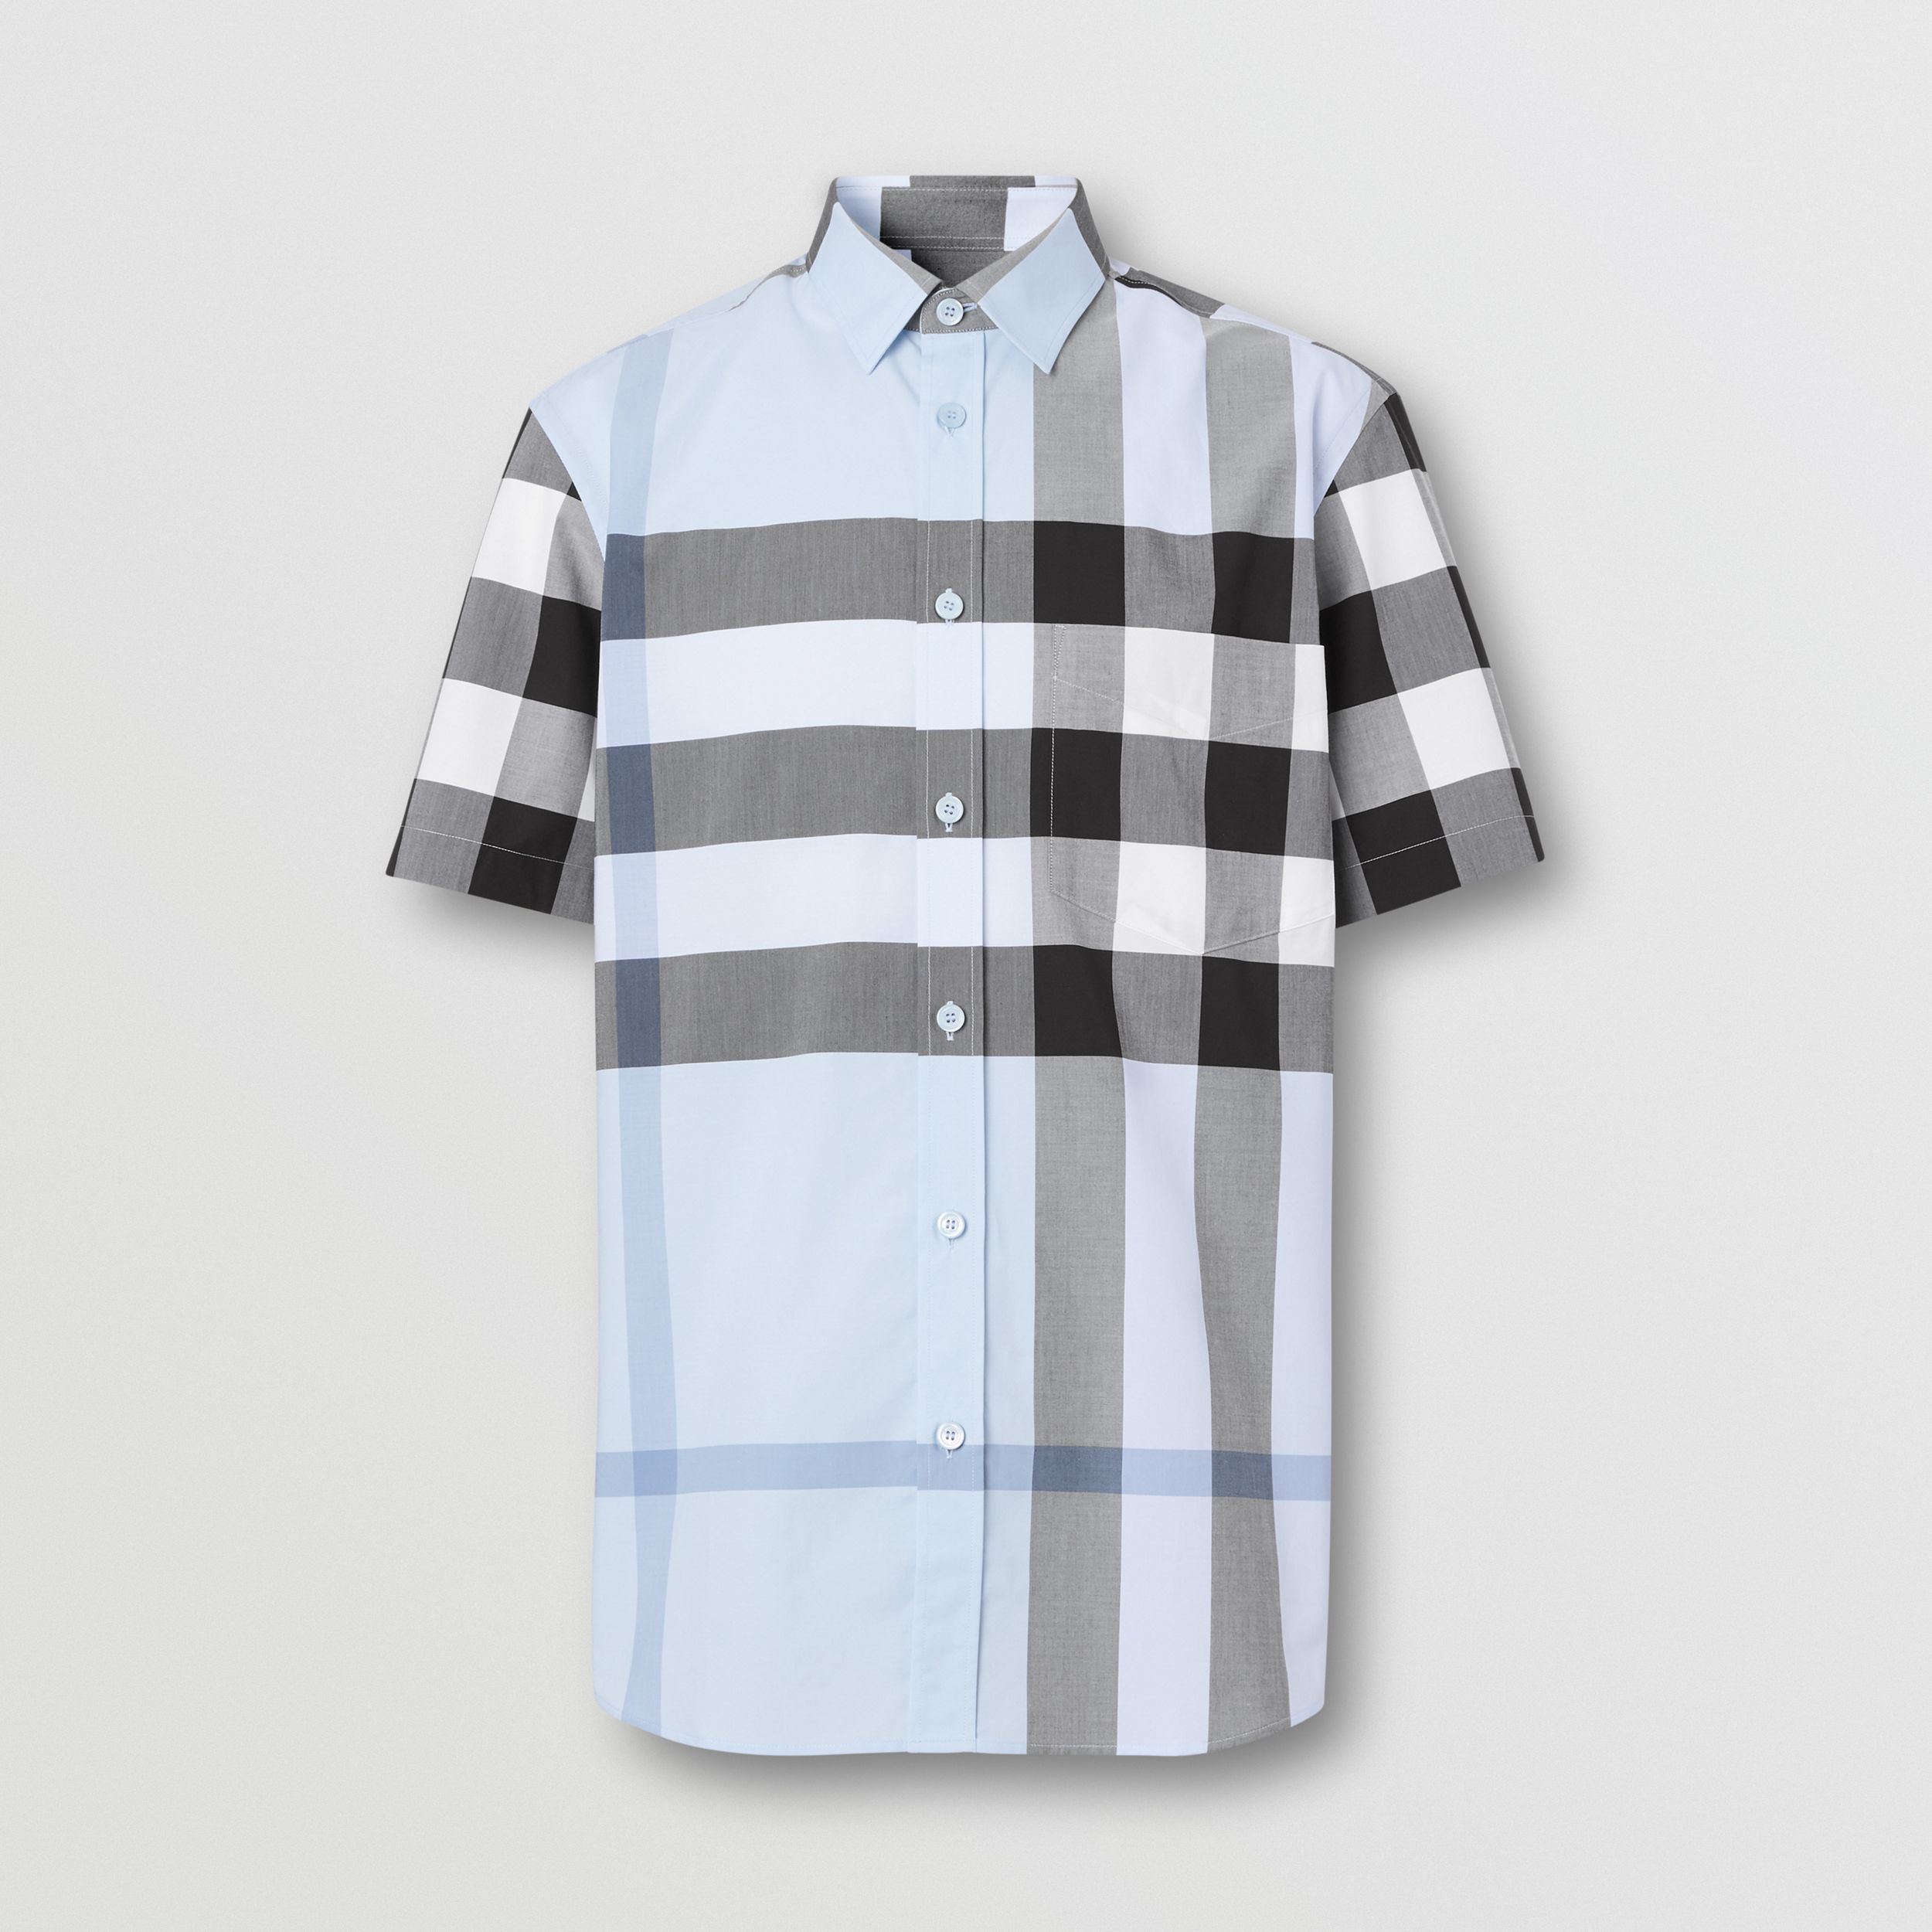 Short-sleeve Check Stretch Cotton Poplin Shirt in Chalk Blue - Men | Burberry - 4